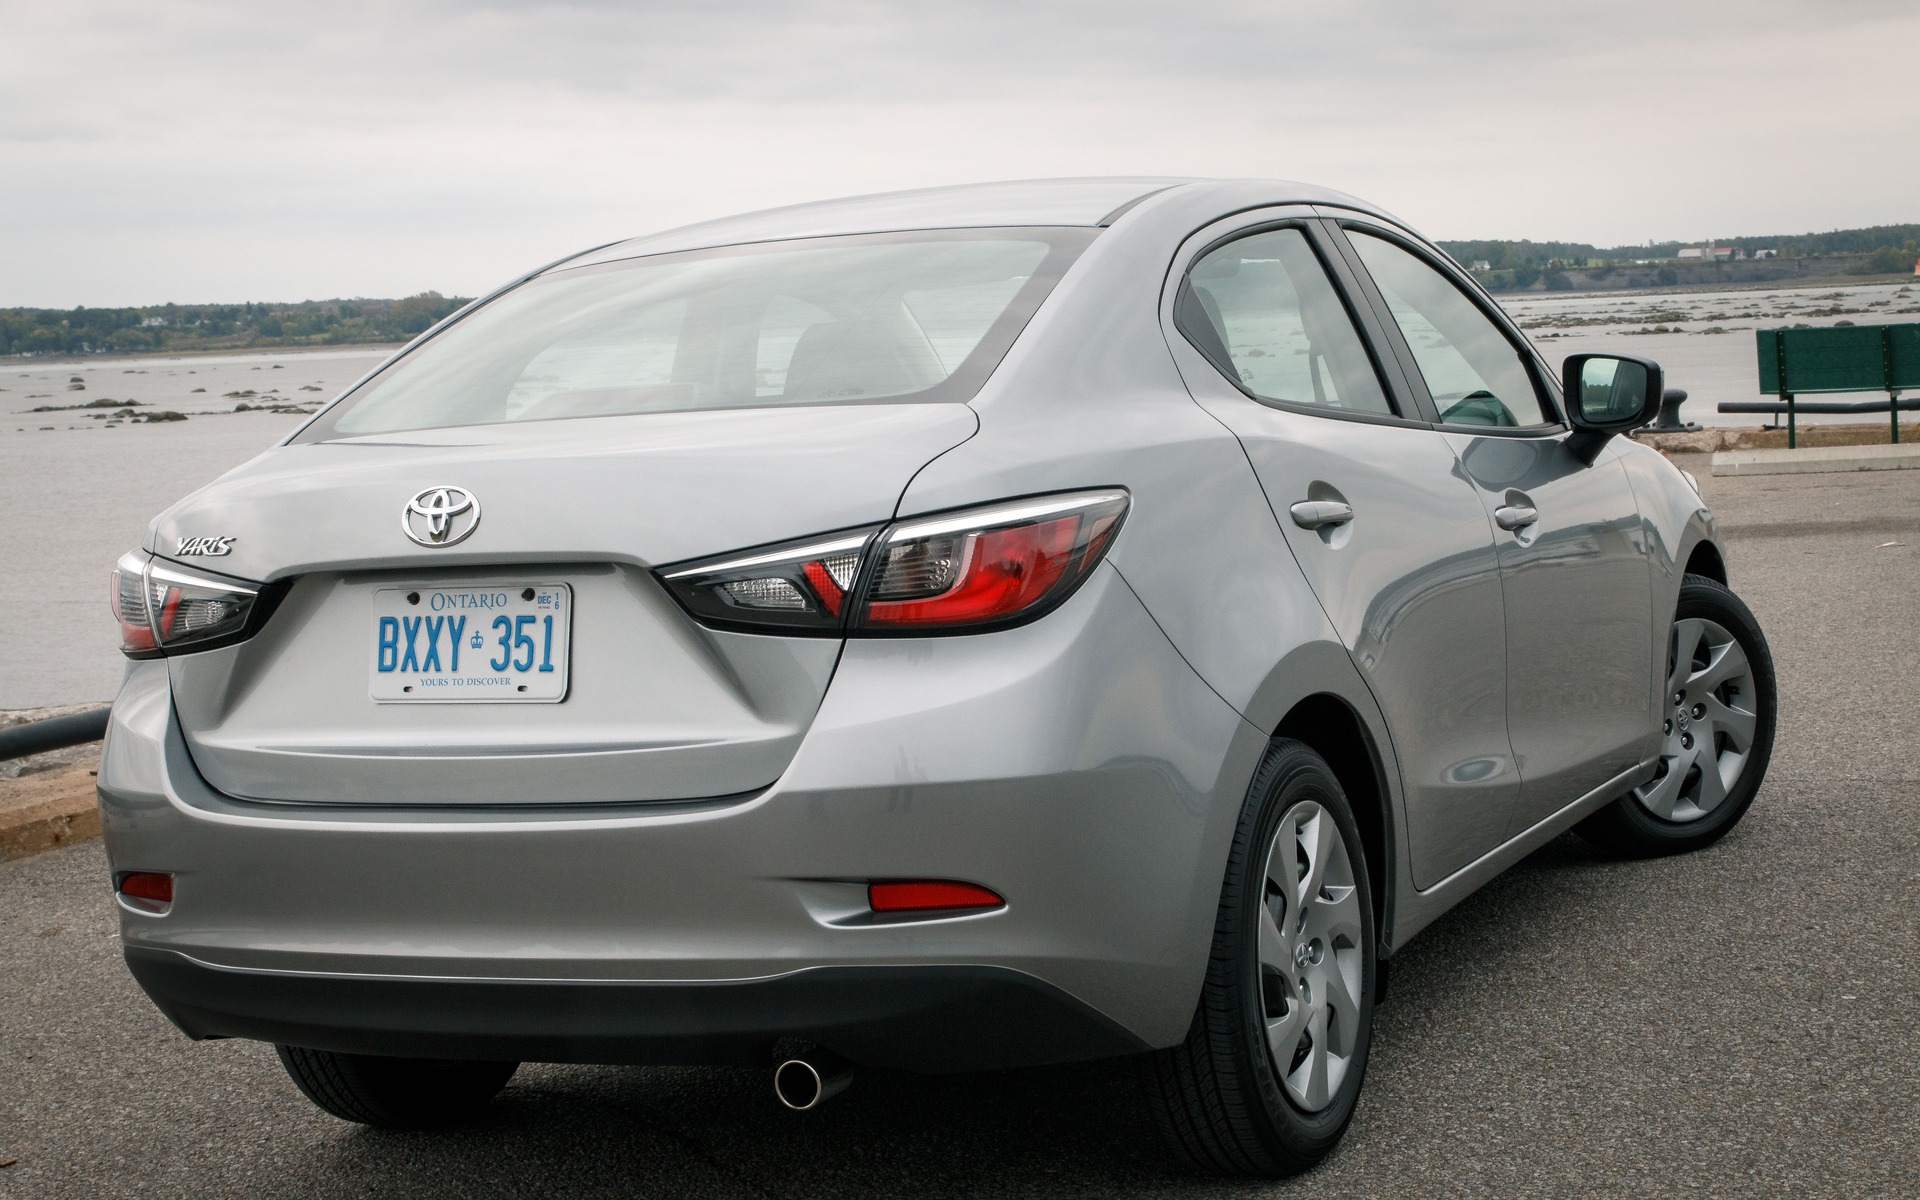 2016 Toyota Yaris Sedan The Adopted Son 8 27